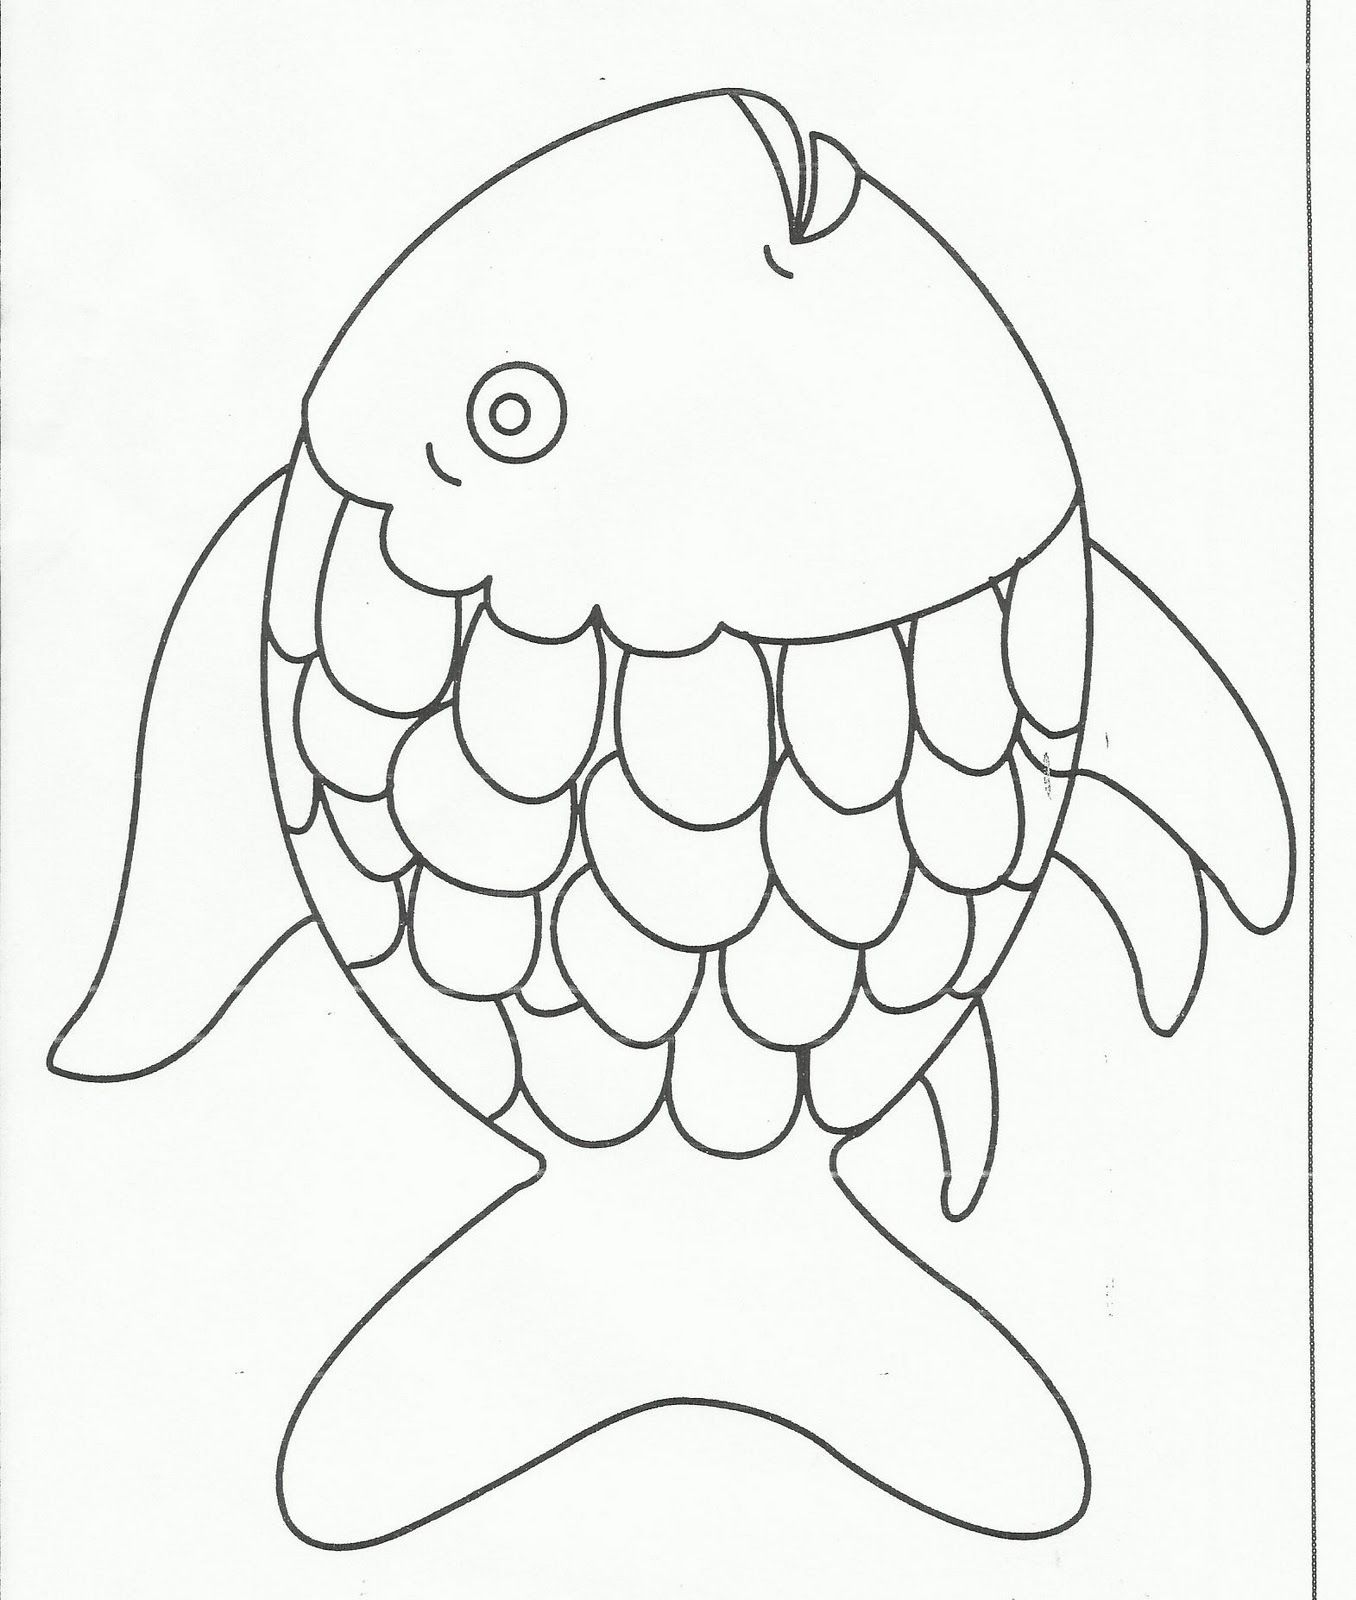 Rainbow Fish Coloring Page Con Imagenes Pez Para Colorear